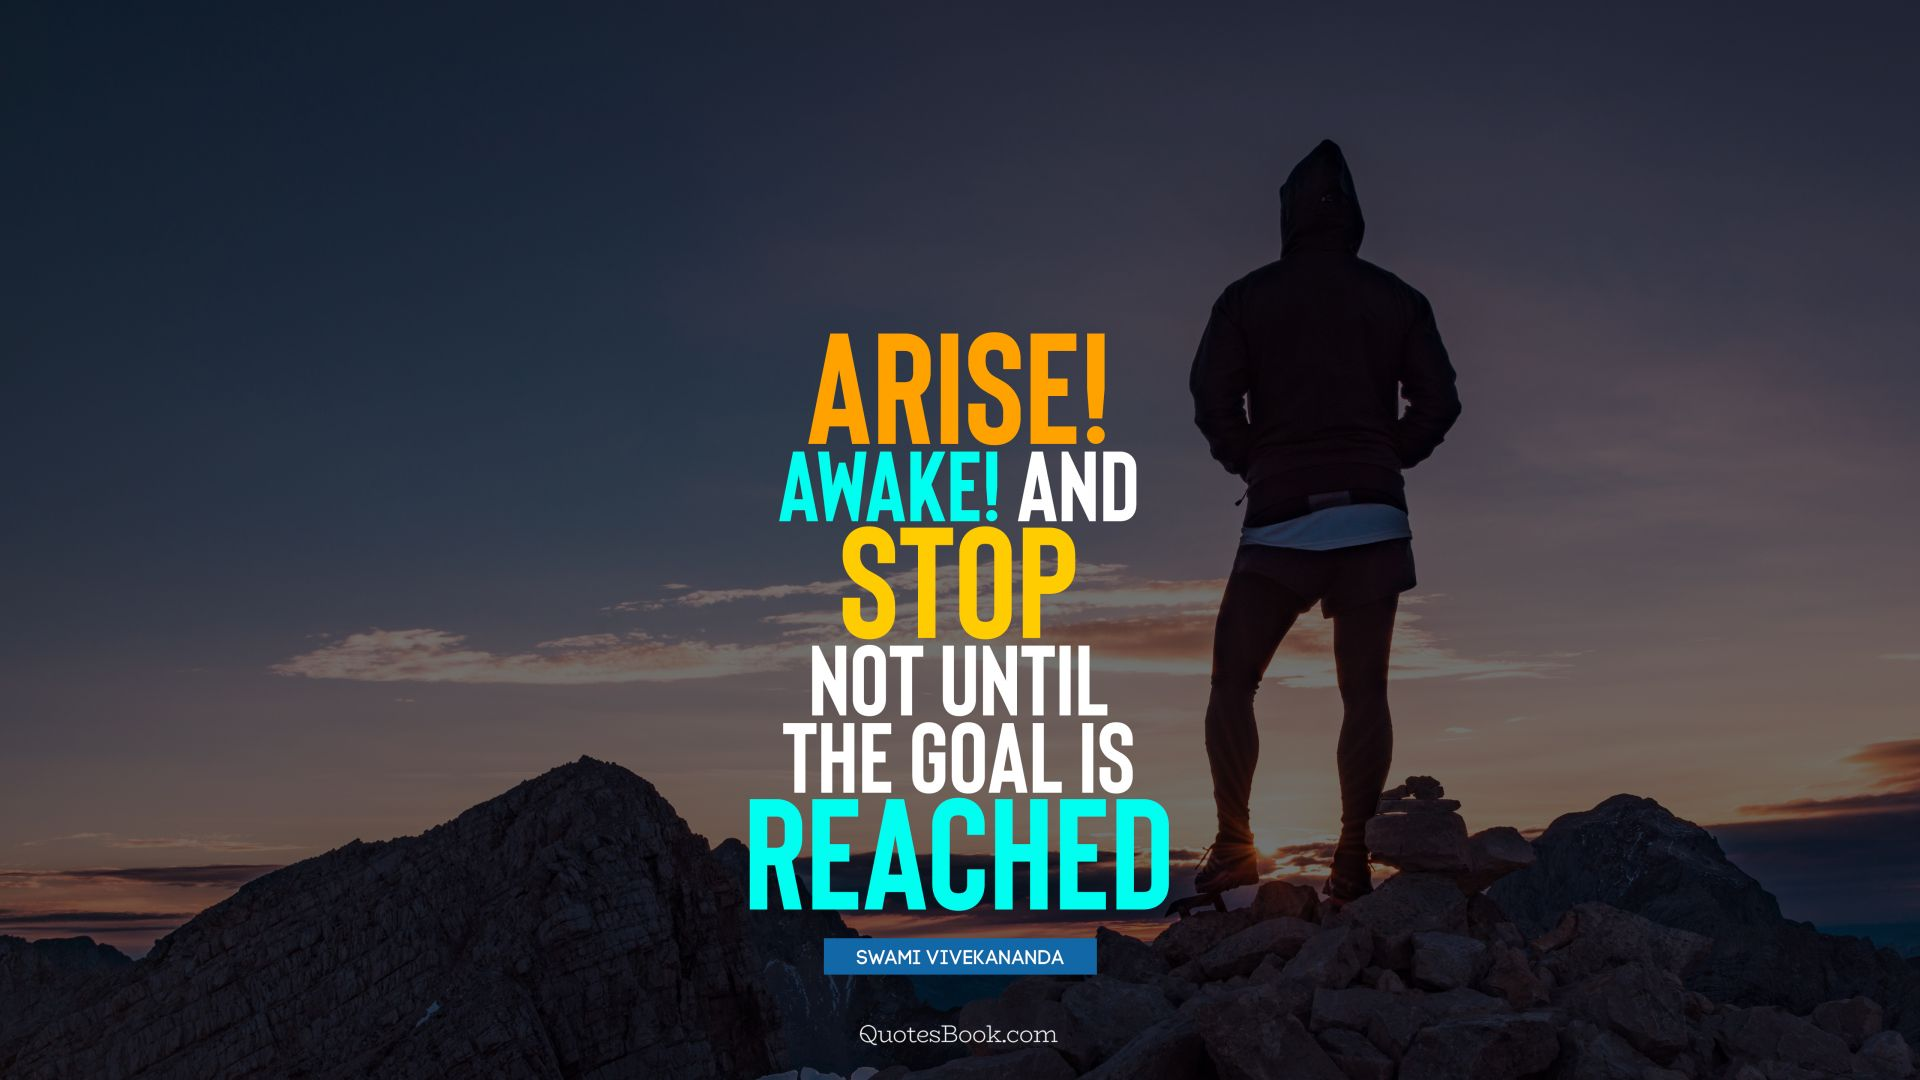 Arise! Awake! and stop not until the goal is reached. - Quote by Swami Vivekananda